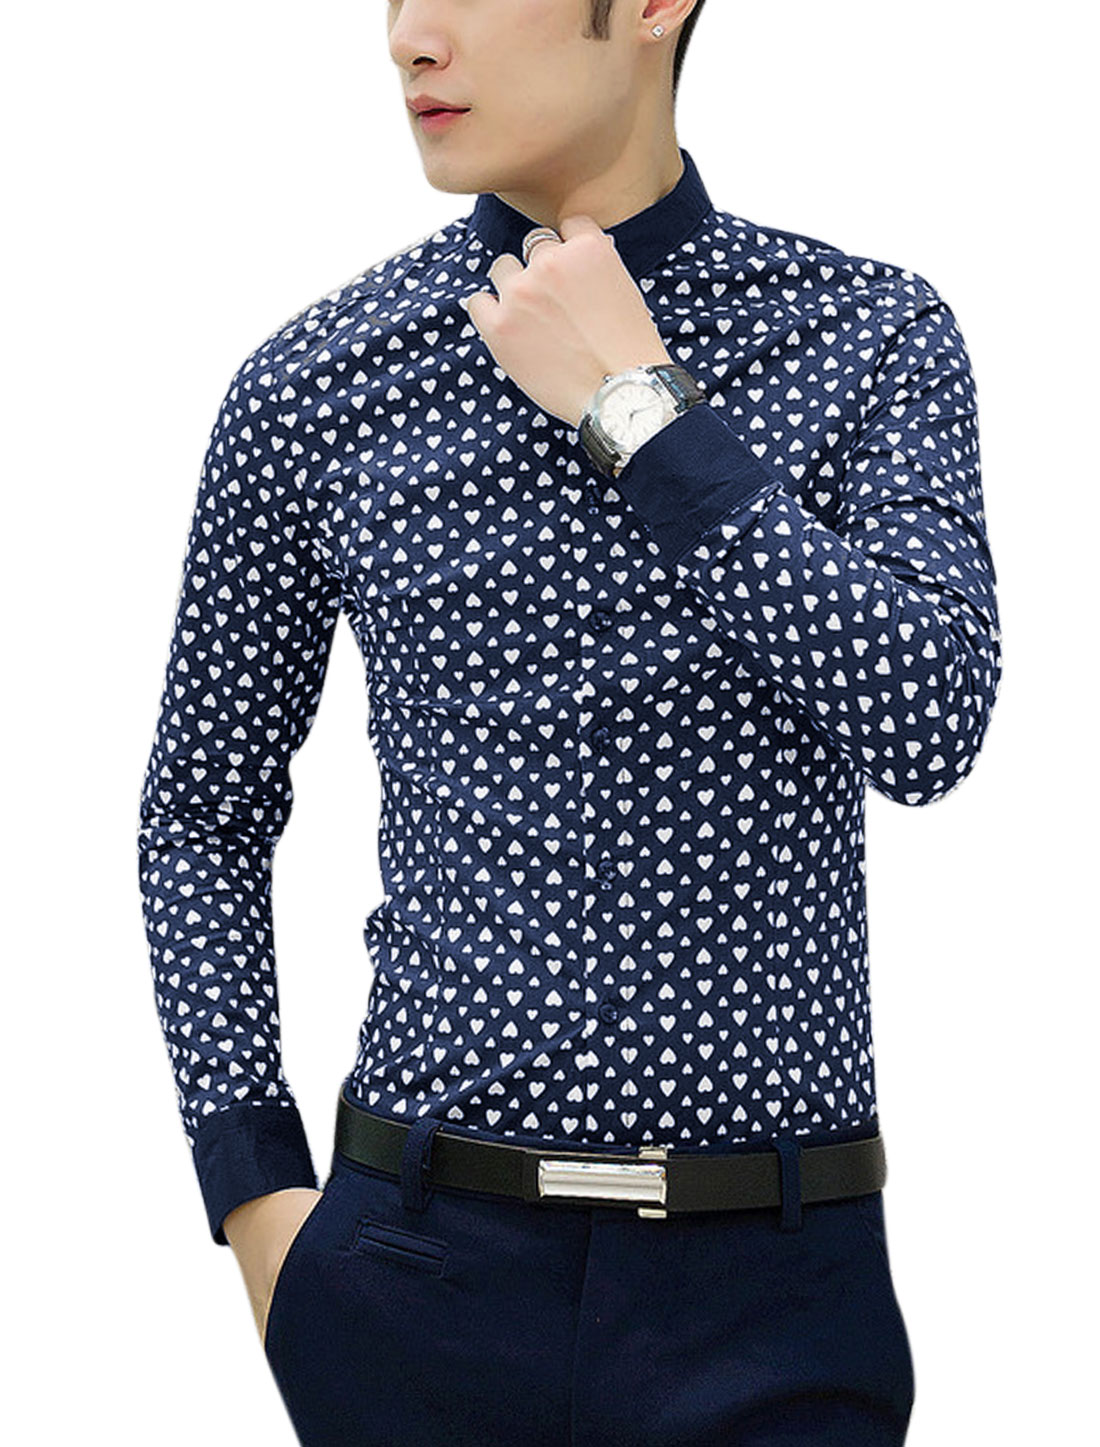 Men Allover Hearts Print Panel Point Collar Button Down Shirt Navy Blue M